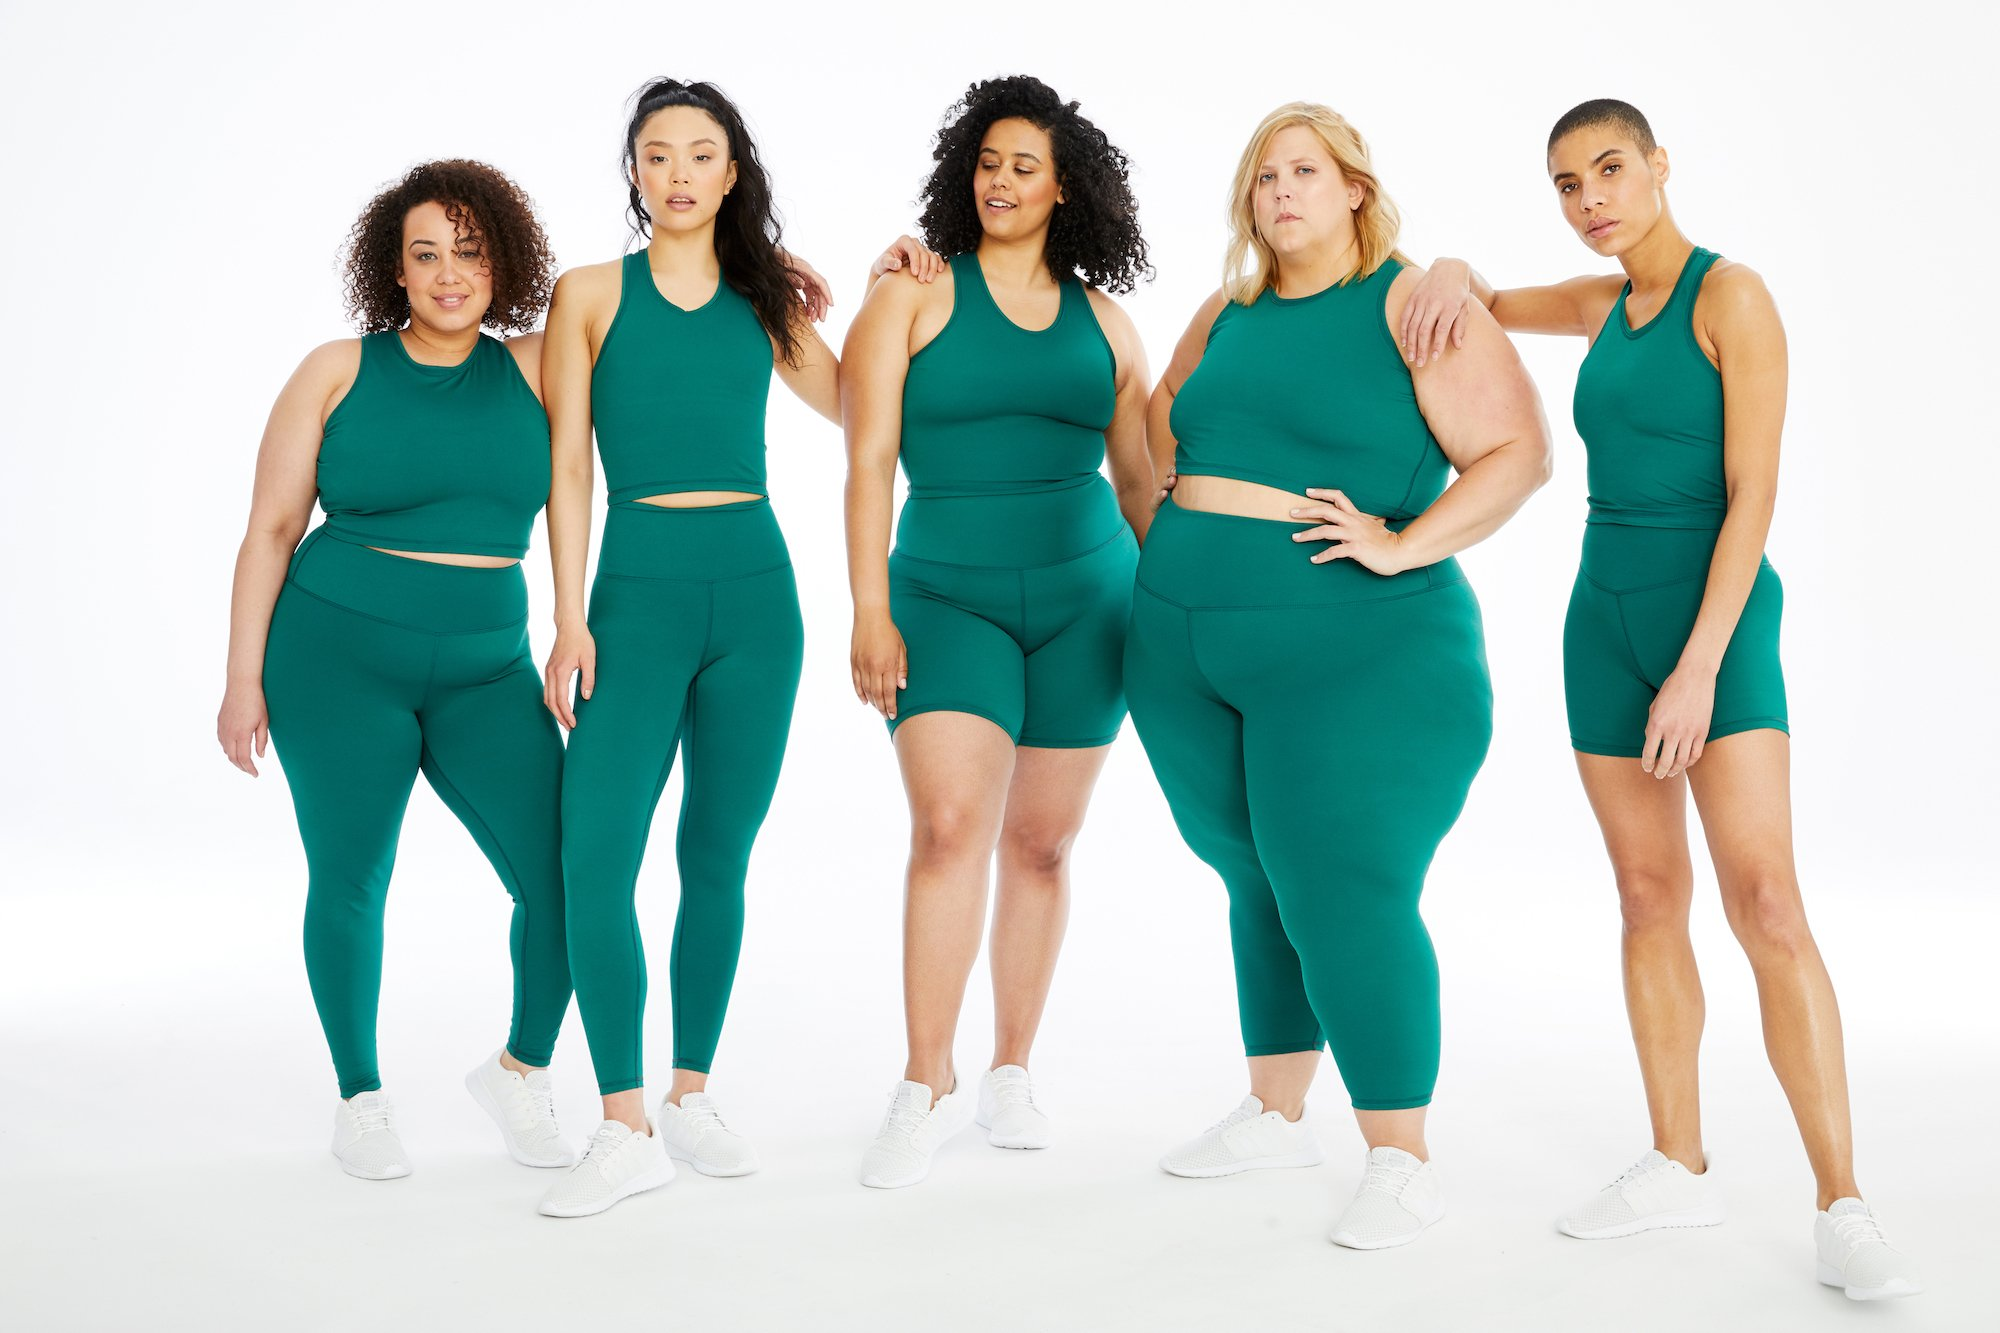 Five women model green activewear from brand Day Won.